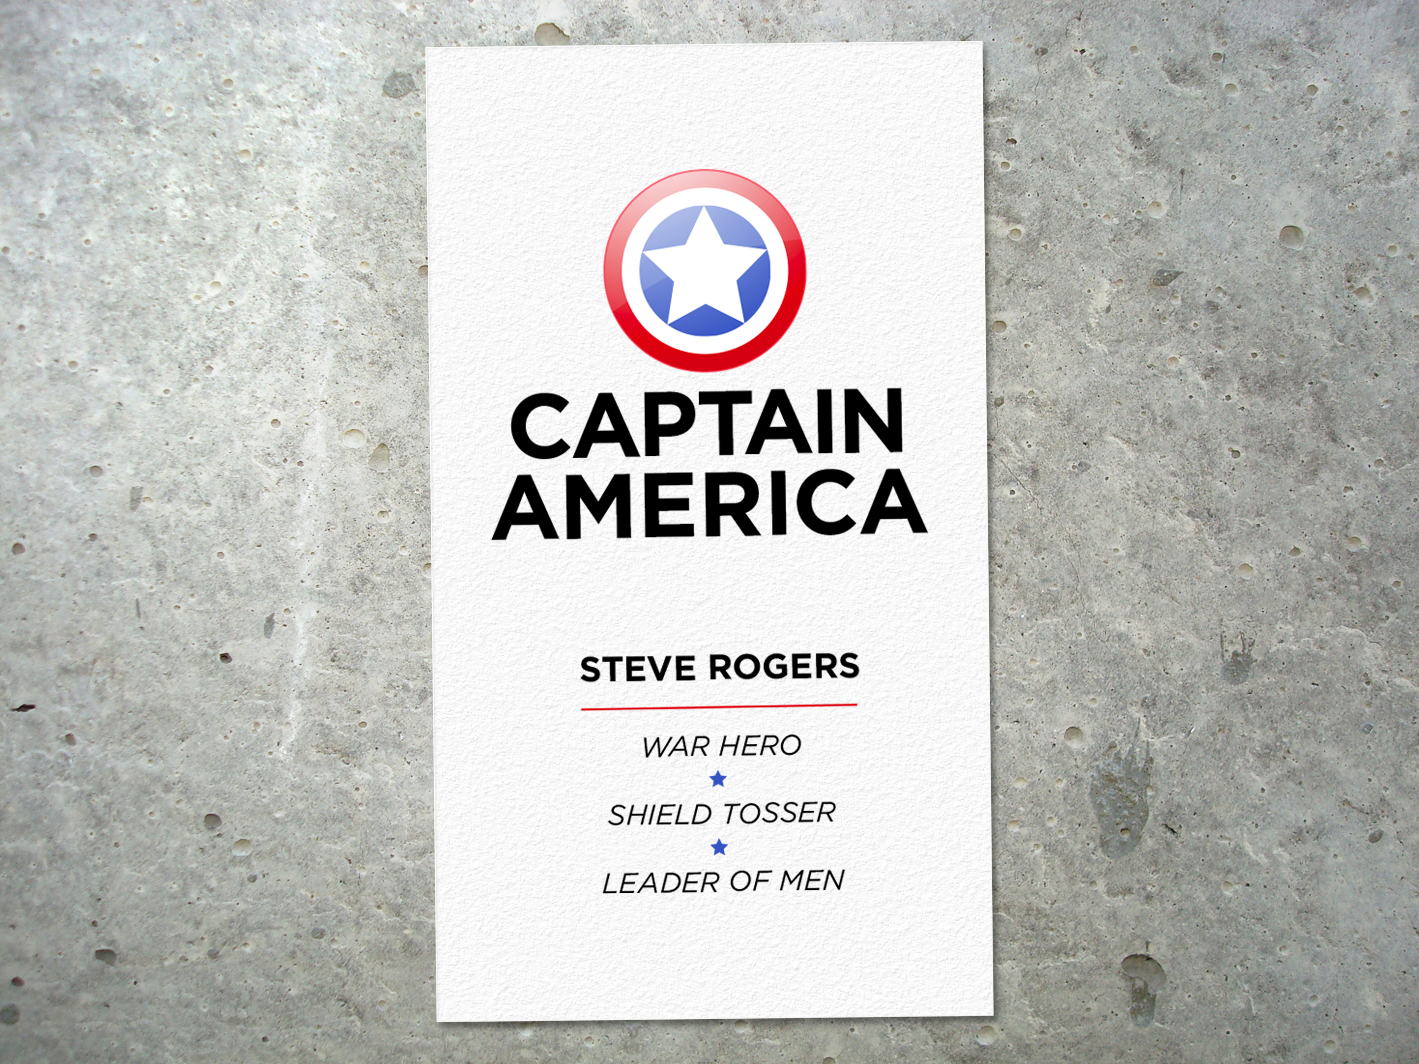 Delighted Superhero Business Cards Pictures Inspiration - Business ...